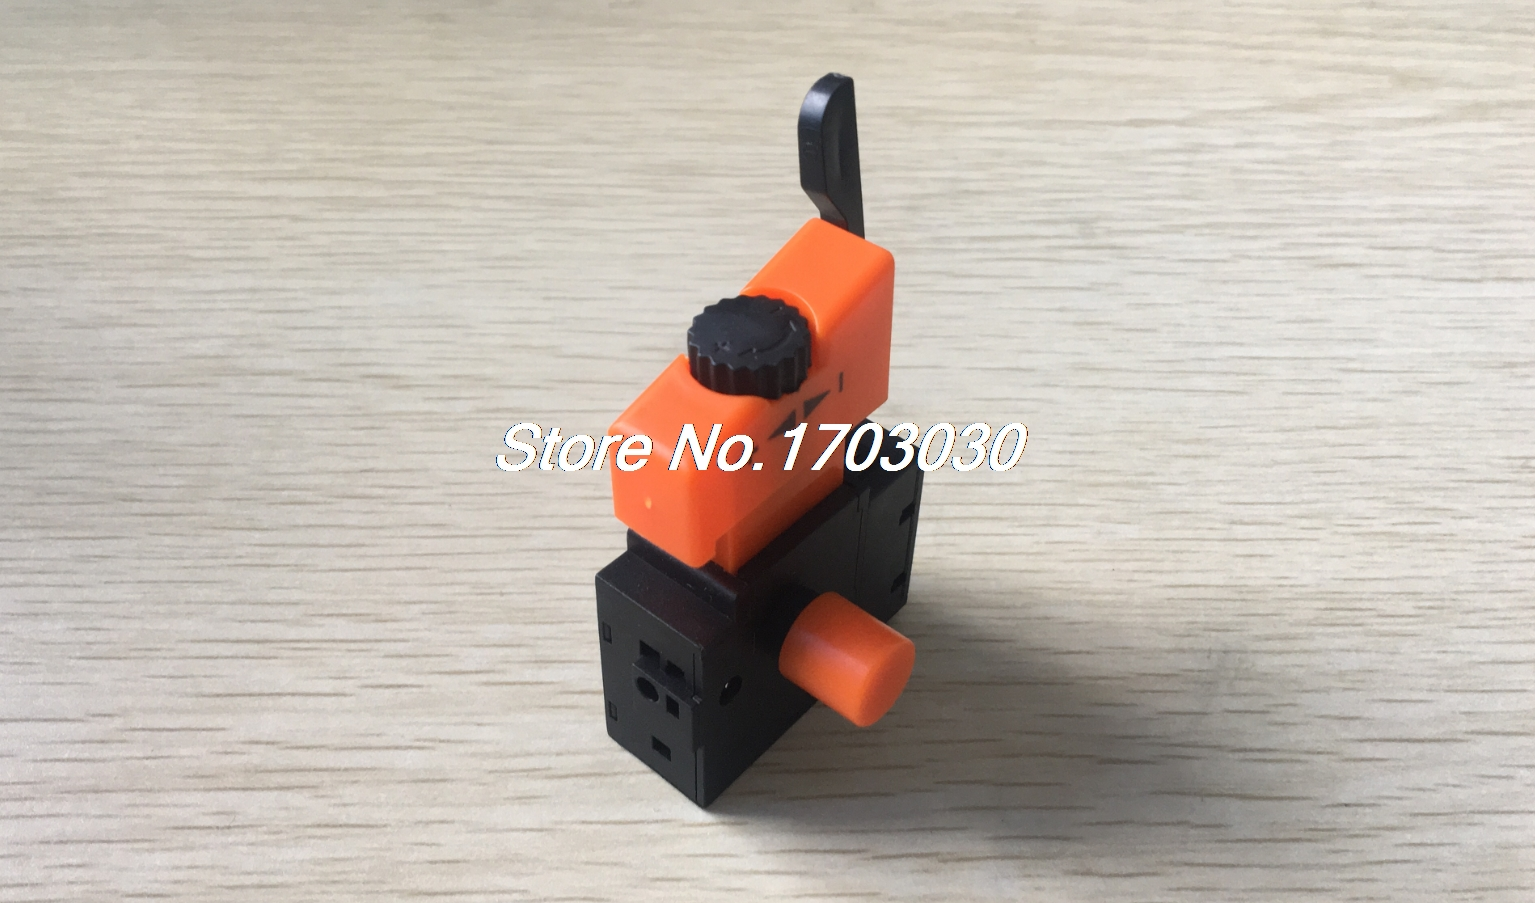 AC 250V 6A Lock On Speed Control Electric Drill Power Tool Switch тонер картридж для лазерных аппаратов lexmark cs510de cs510dte black extra high yield corporate cartridge 8k 70c8xke